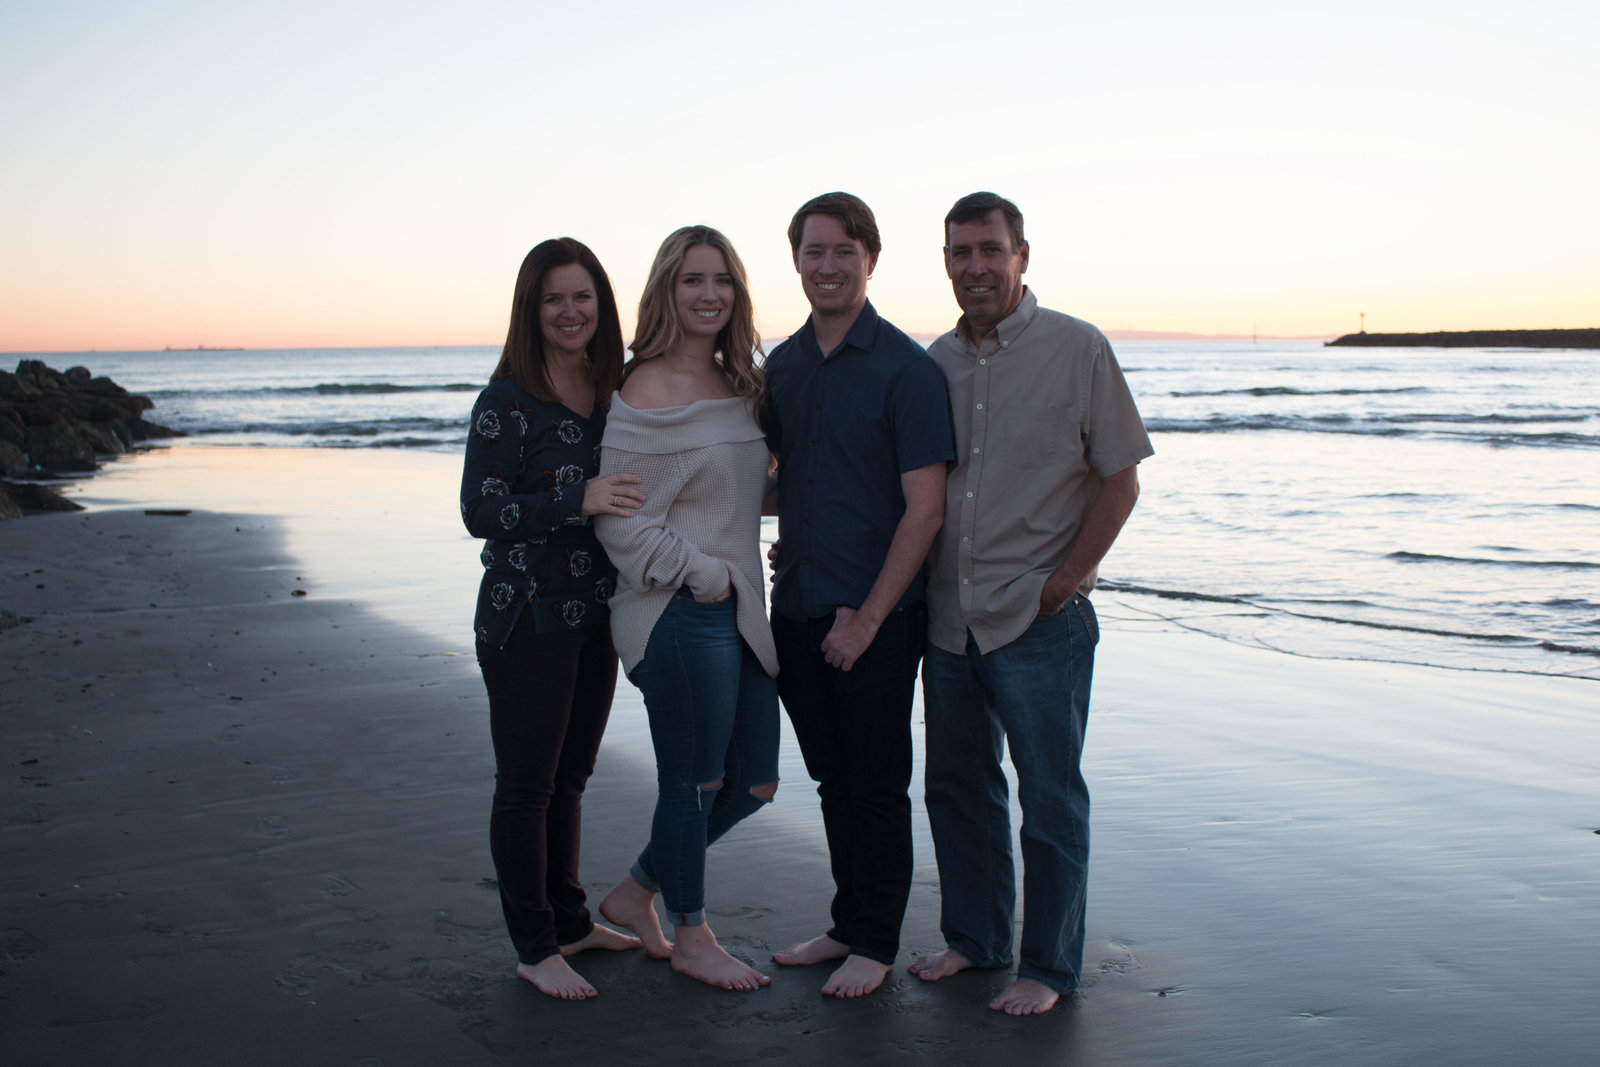 seal-beach-family-photos-by-kelly-h-photo